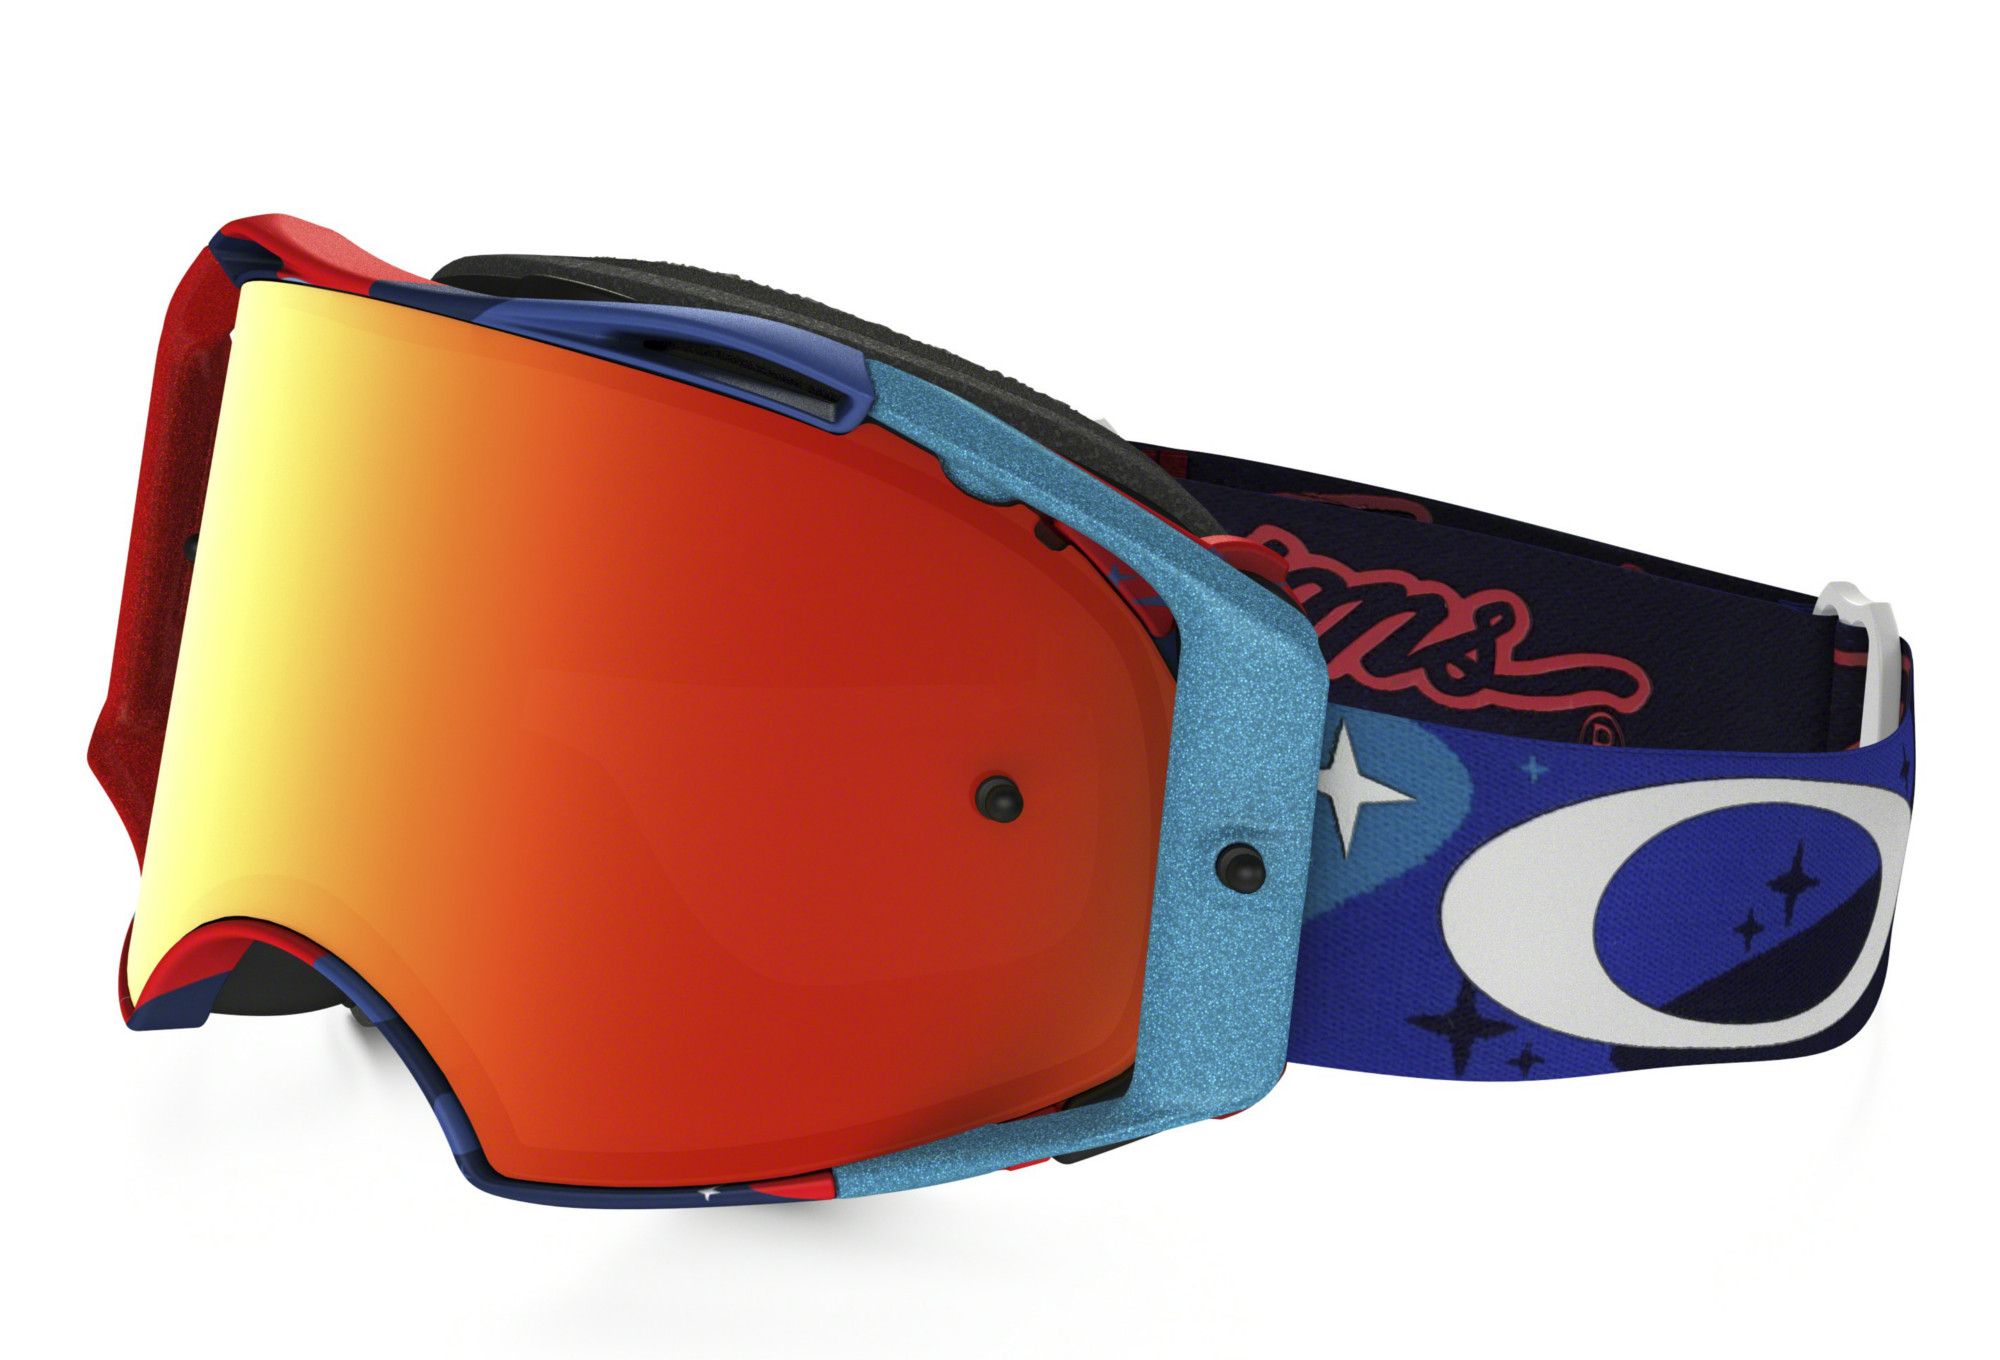 Masque OAKLEY AIRBRAKE MX TLD Cosmic Camo Bleu Rouge Fire Iridium Ref  OO7046-28 2c8d89c41cd0